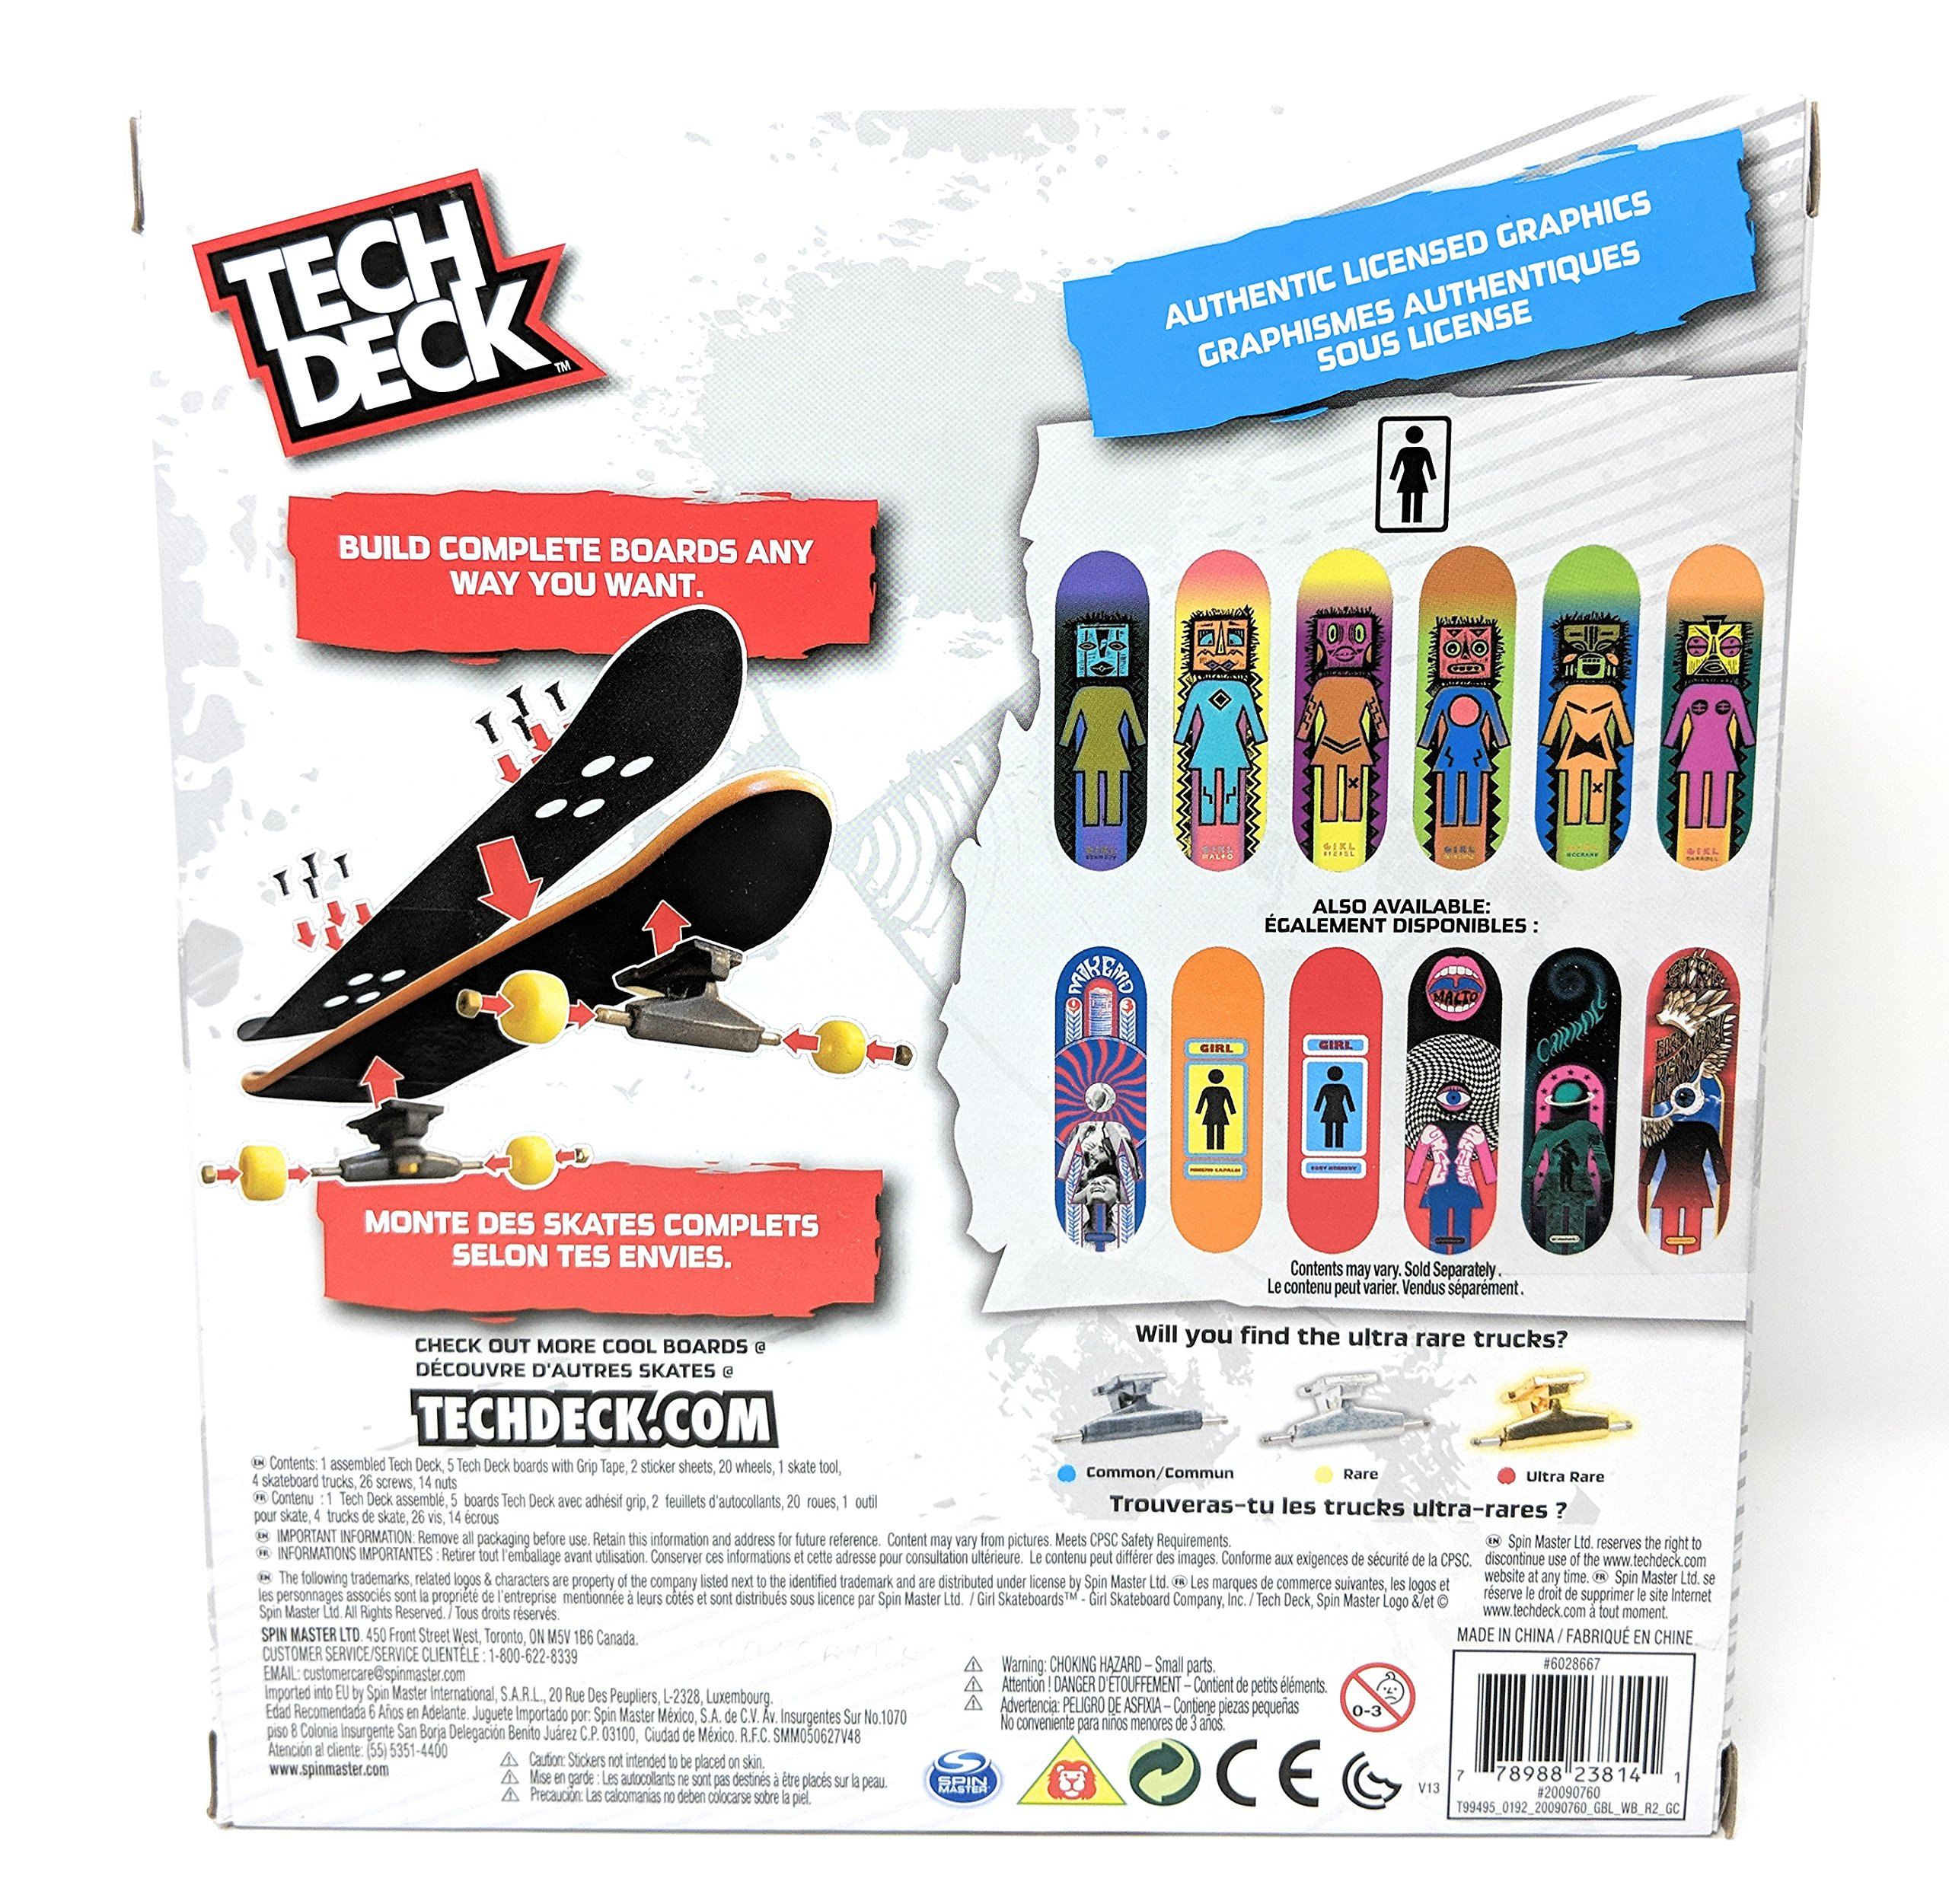 Tech Deck Sk8shop Bonus Pack Girl Skateboards with 6 Fingerboards by Tech Deck (Image #2)